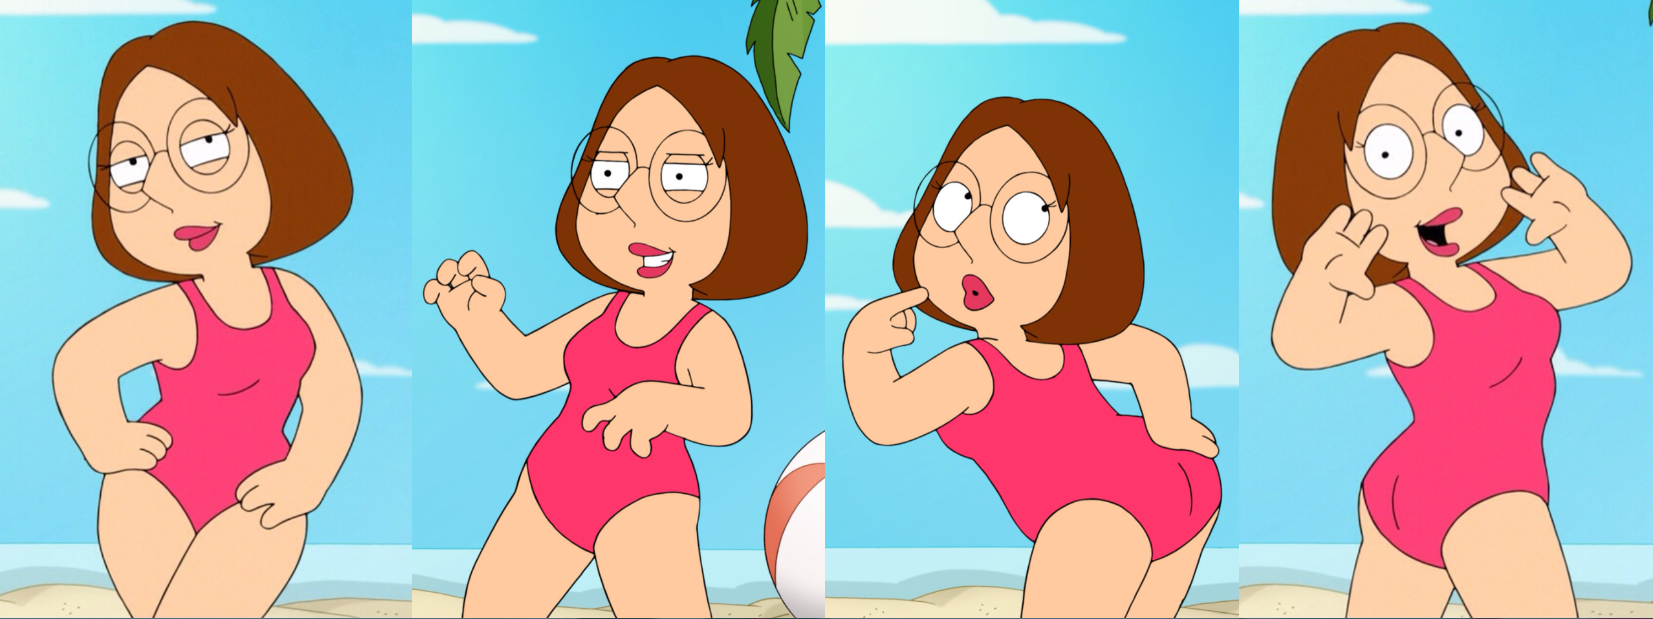 family guy lois nude pussy